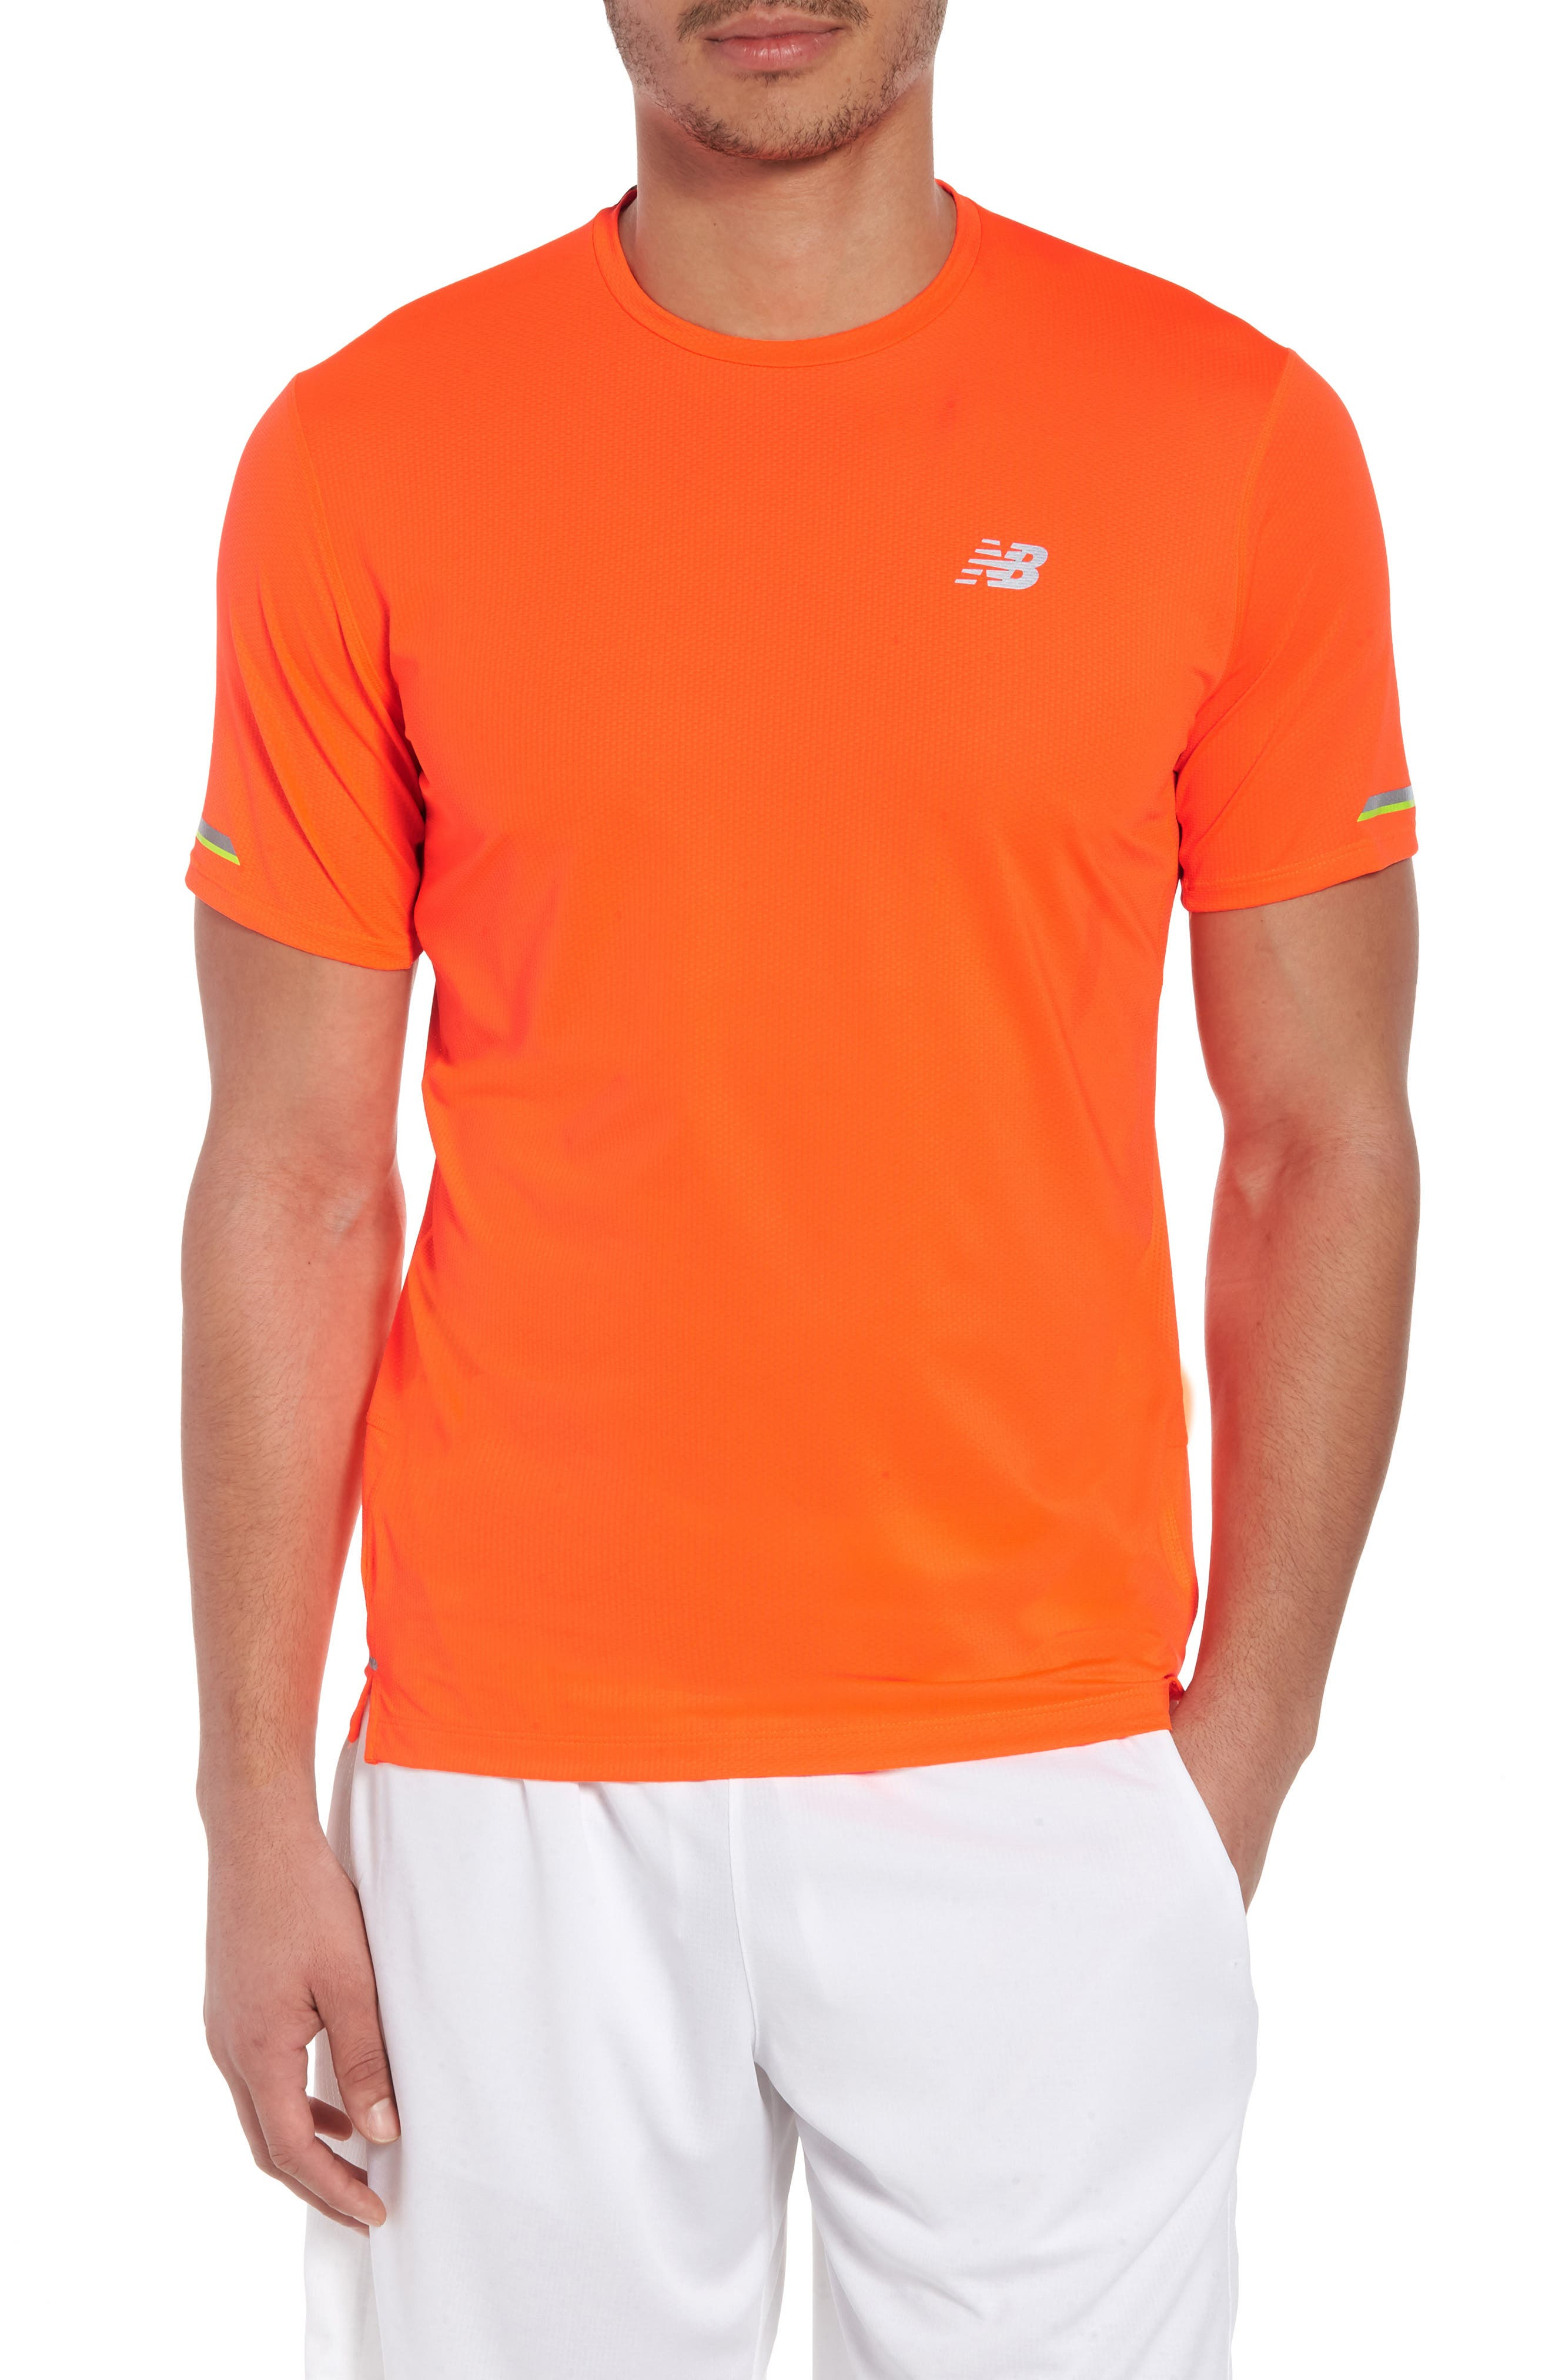 New Balance Ice 2.0 Crewneck T-Shirt